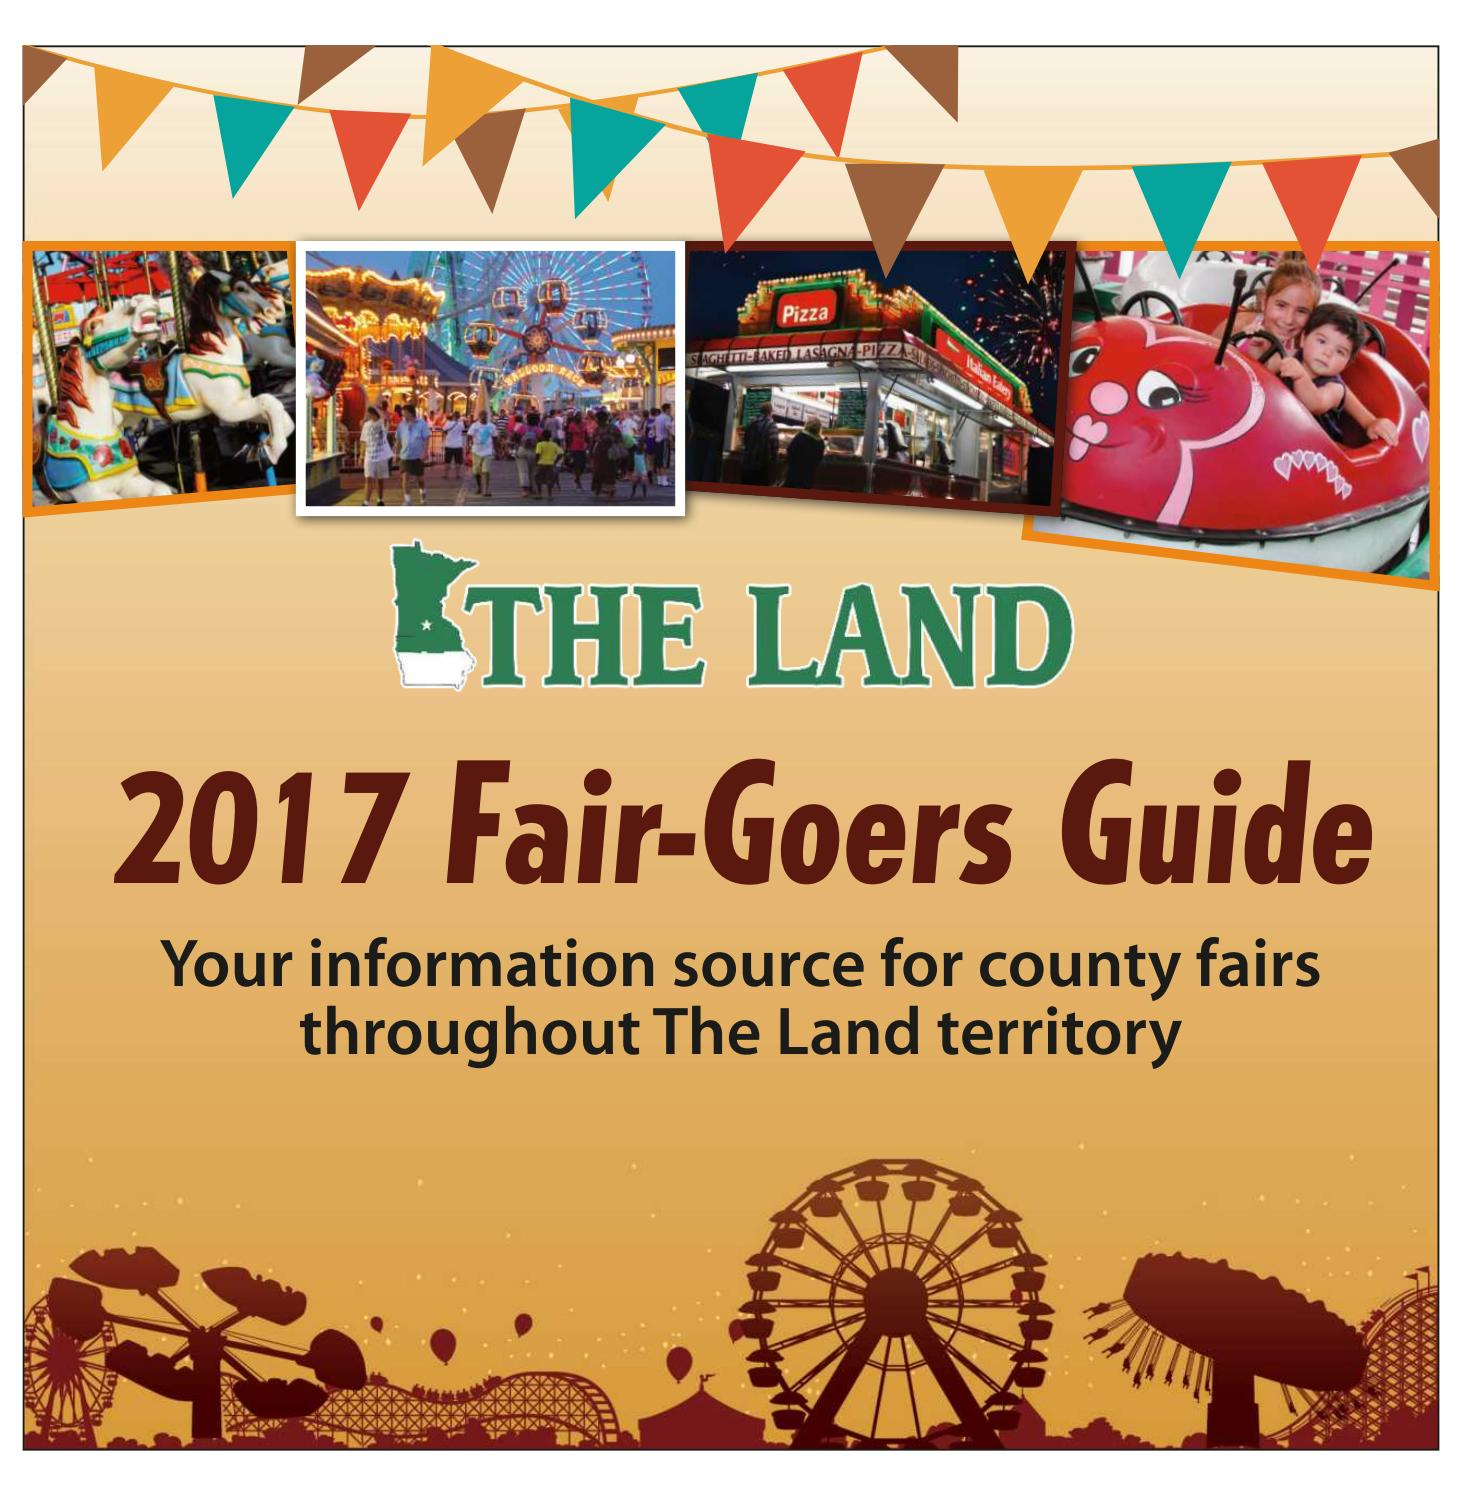 The Land's 2017 Fair-Goer's Guide by The Land - issuu